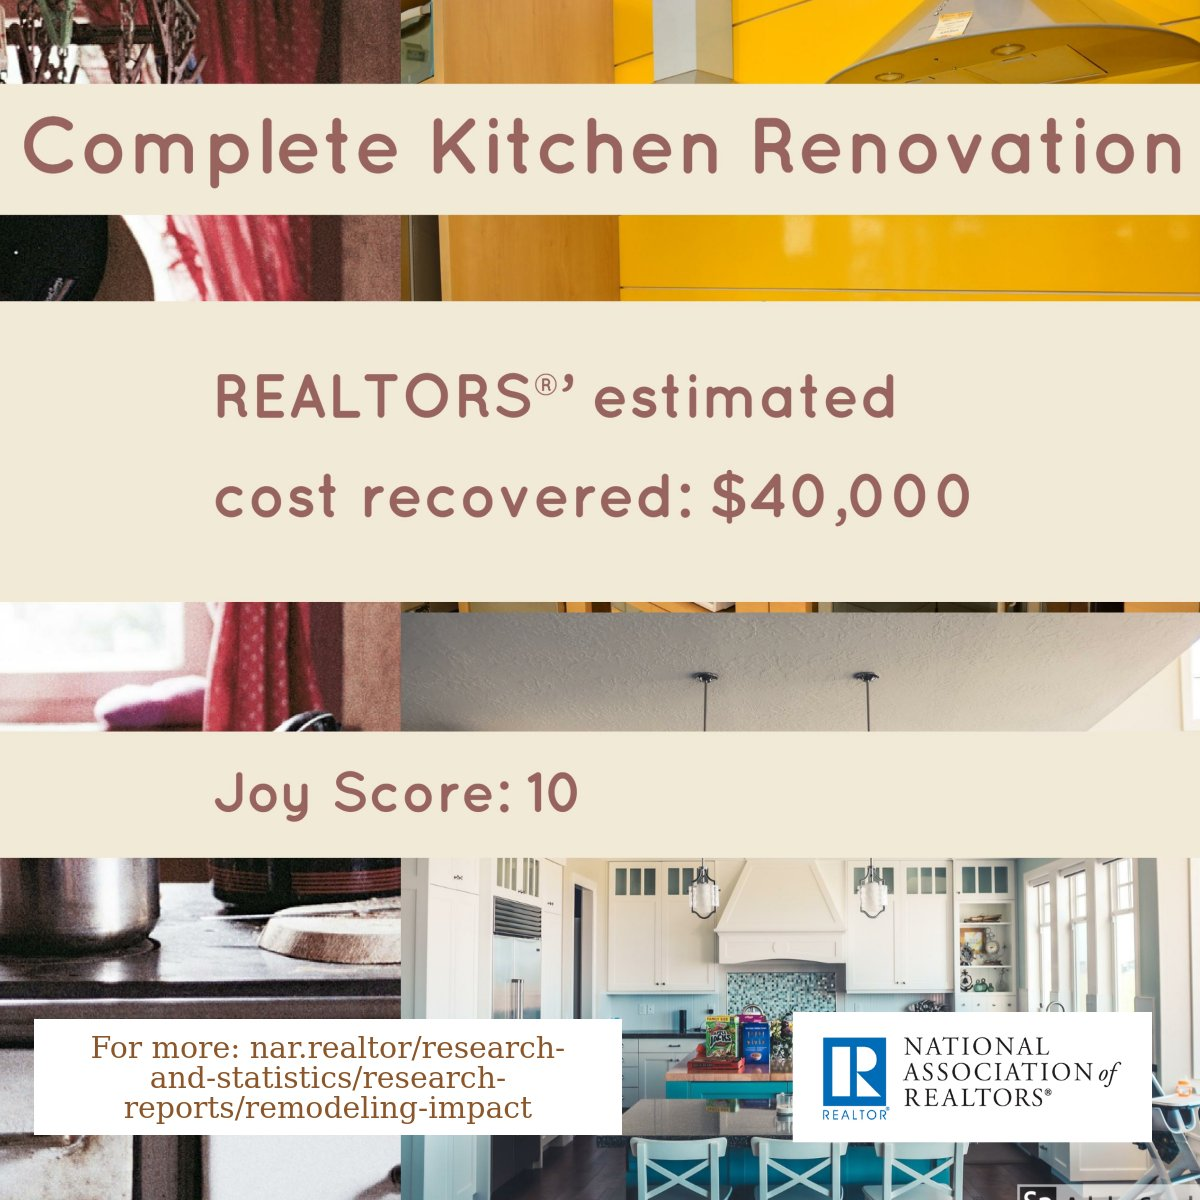 Kitchen Remodel Estimated Cost Recovered - JD PDX Real Estate